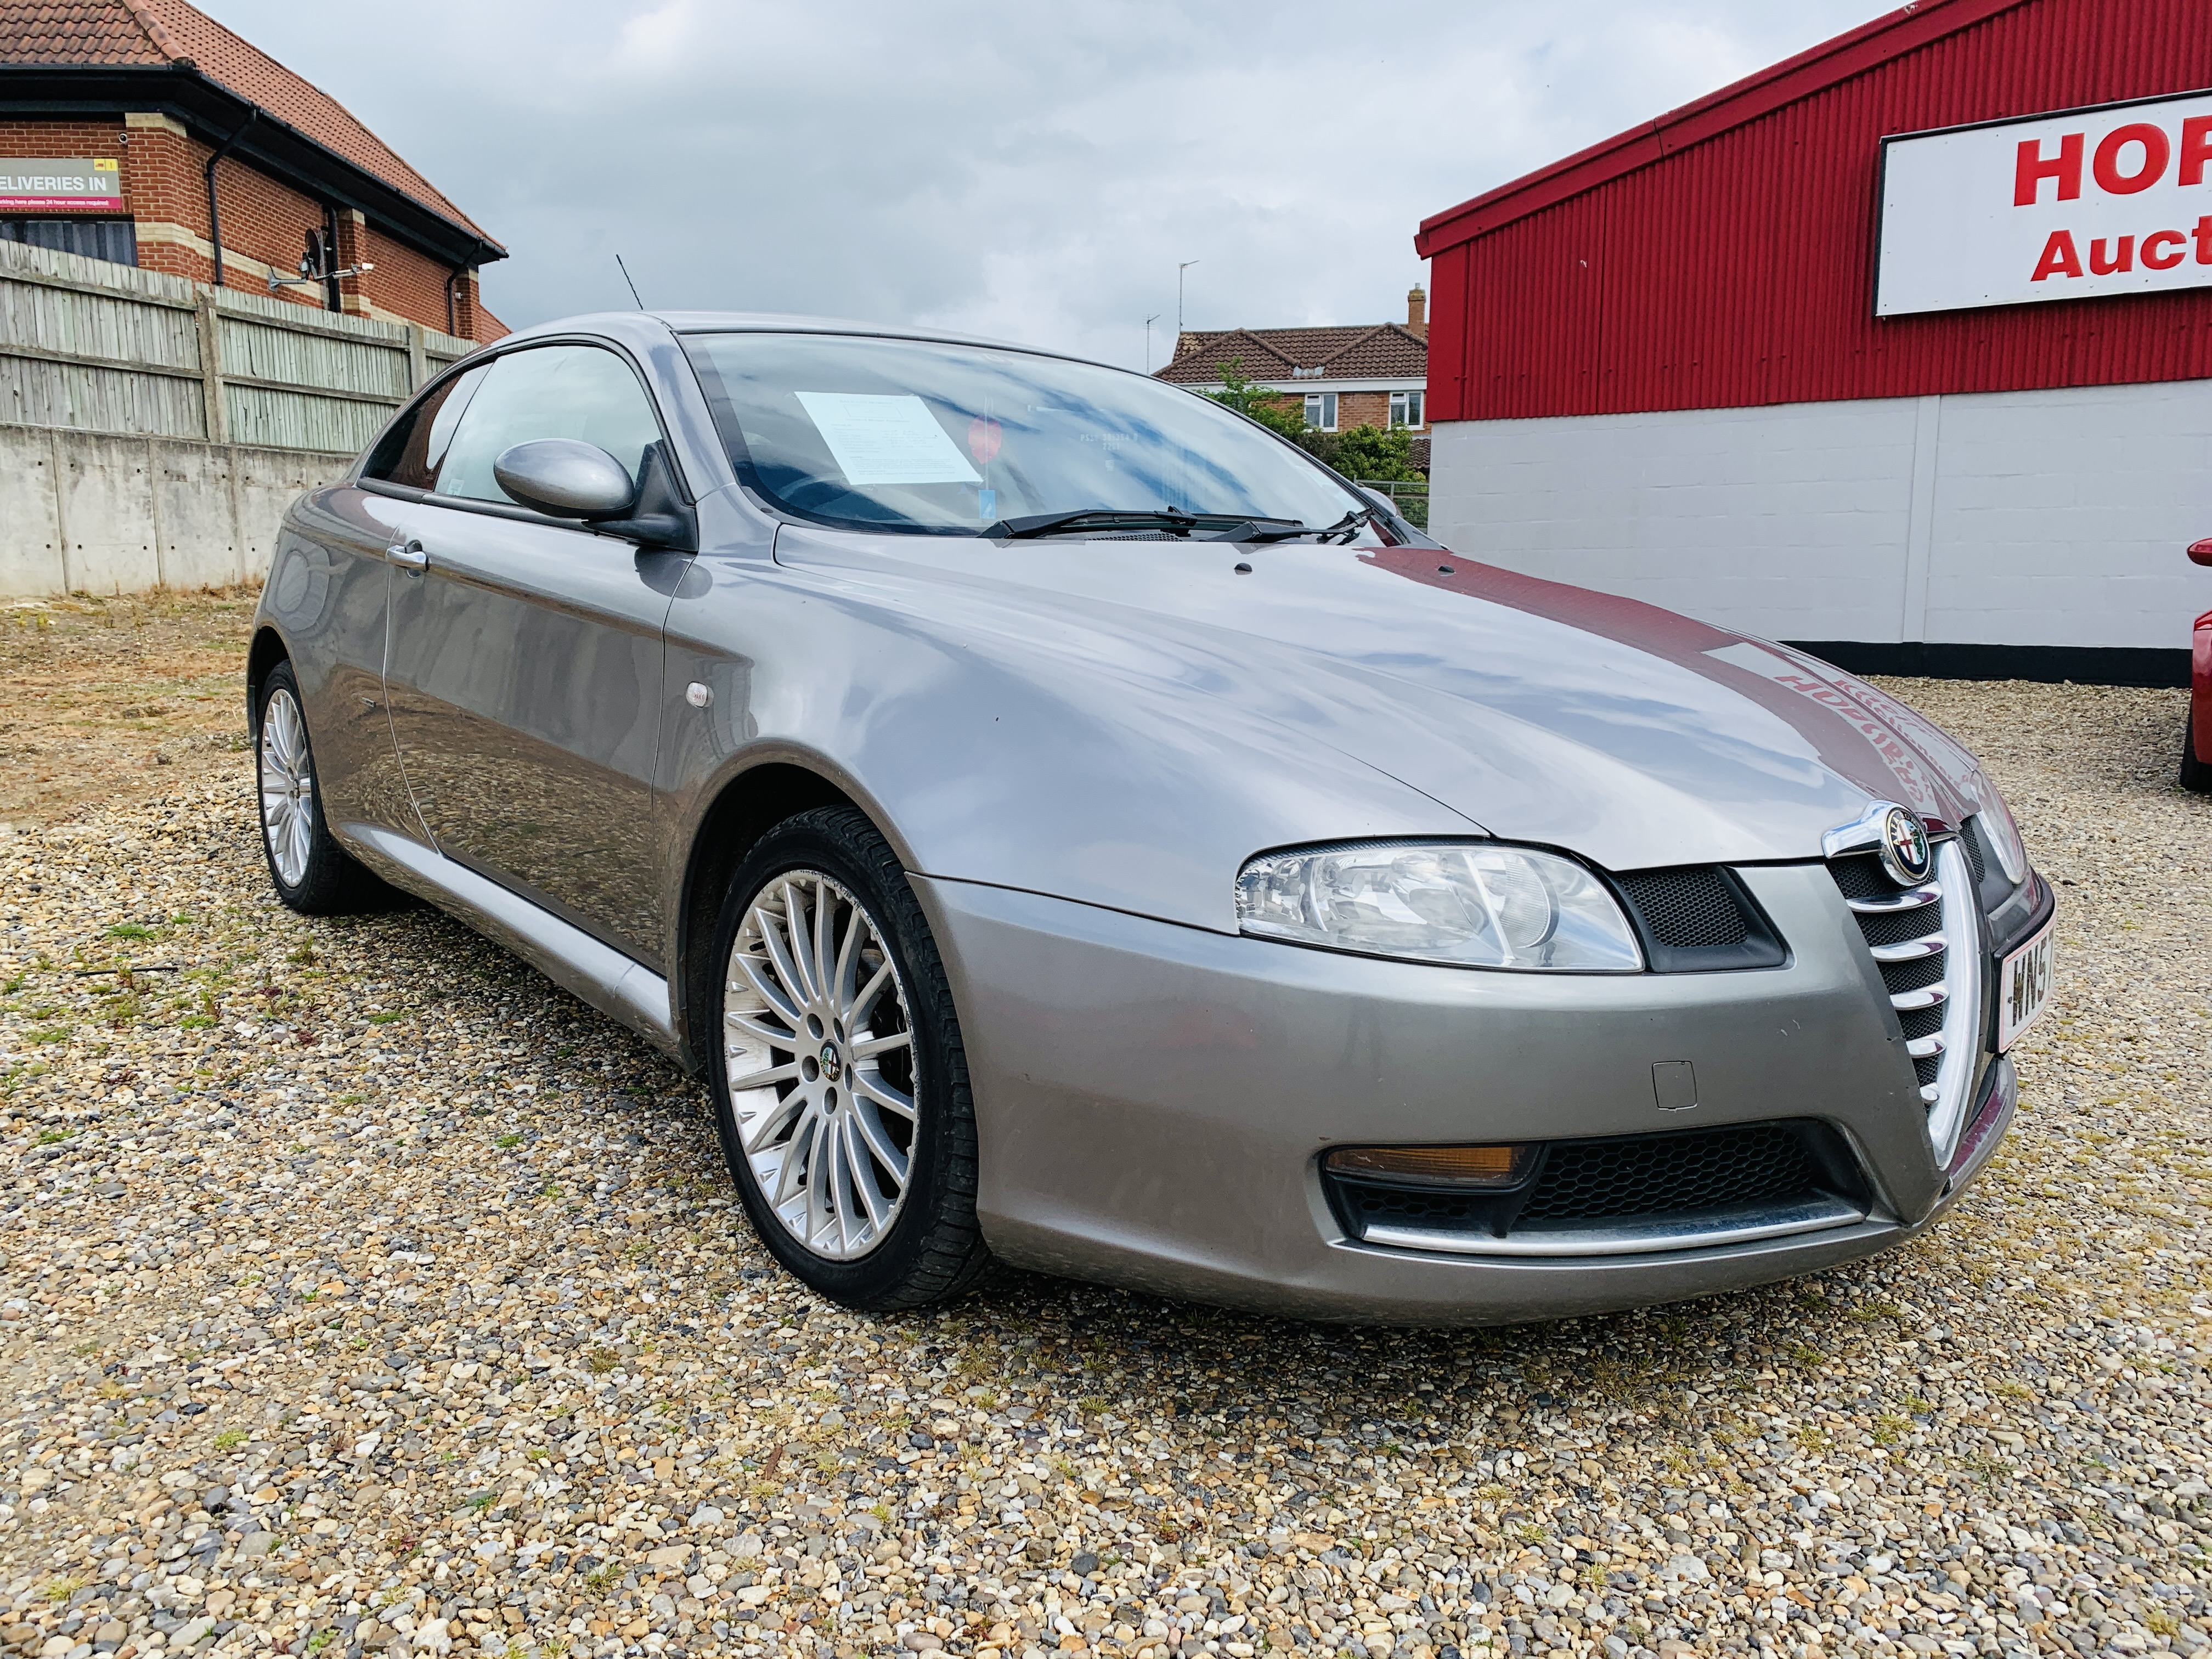 WN57 LHX ALFA ROMEO GT LUSSO JTDM COUPE 1910CC DIESEL. FIRST REGISTERED 29/11/2007.